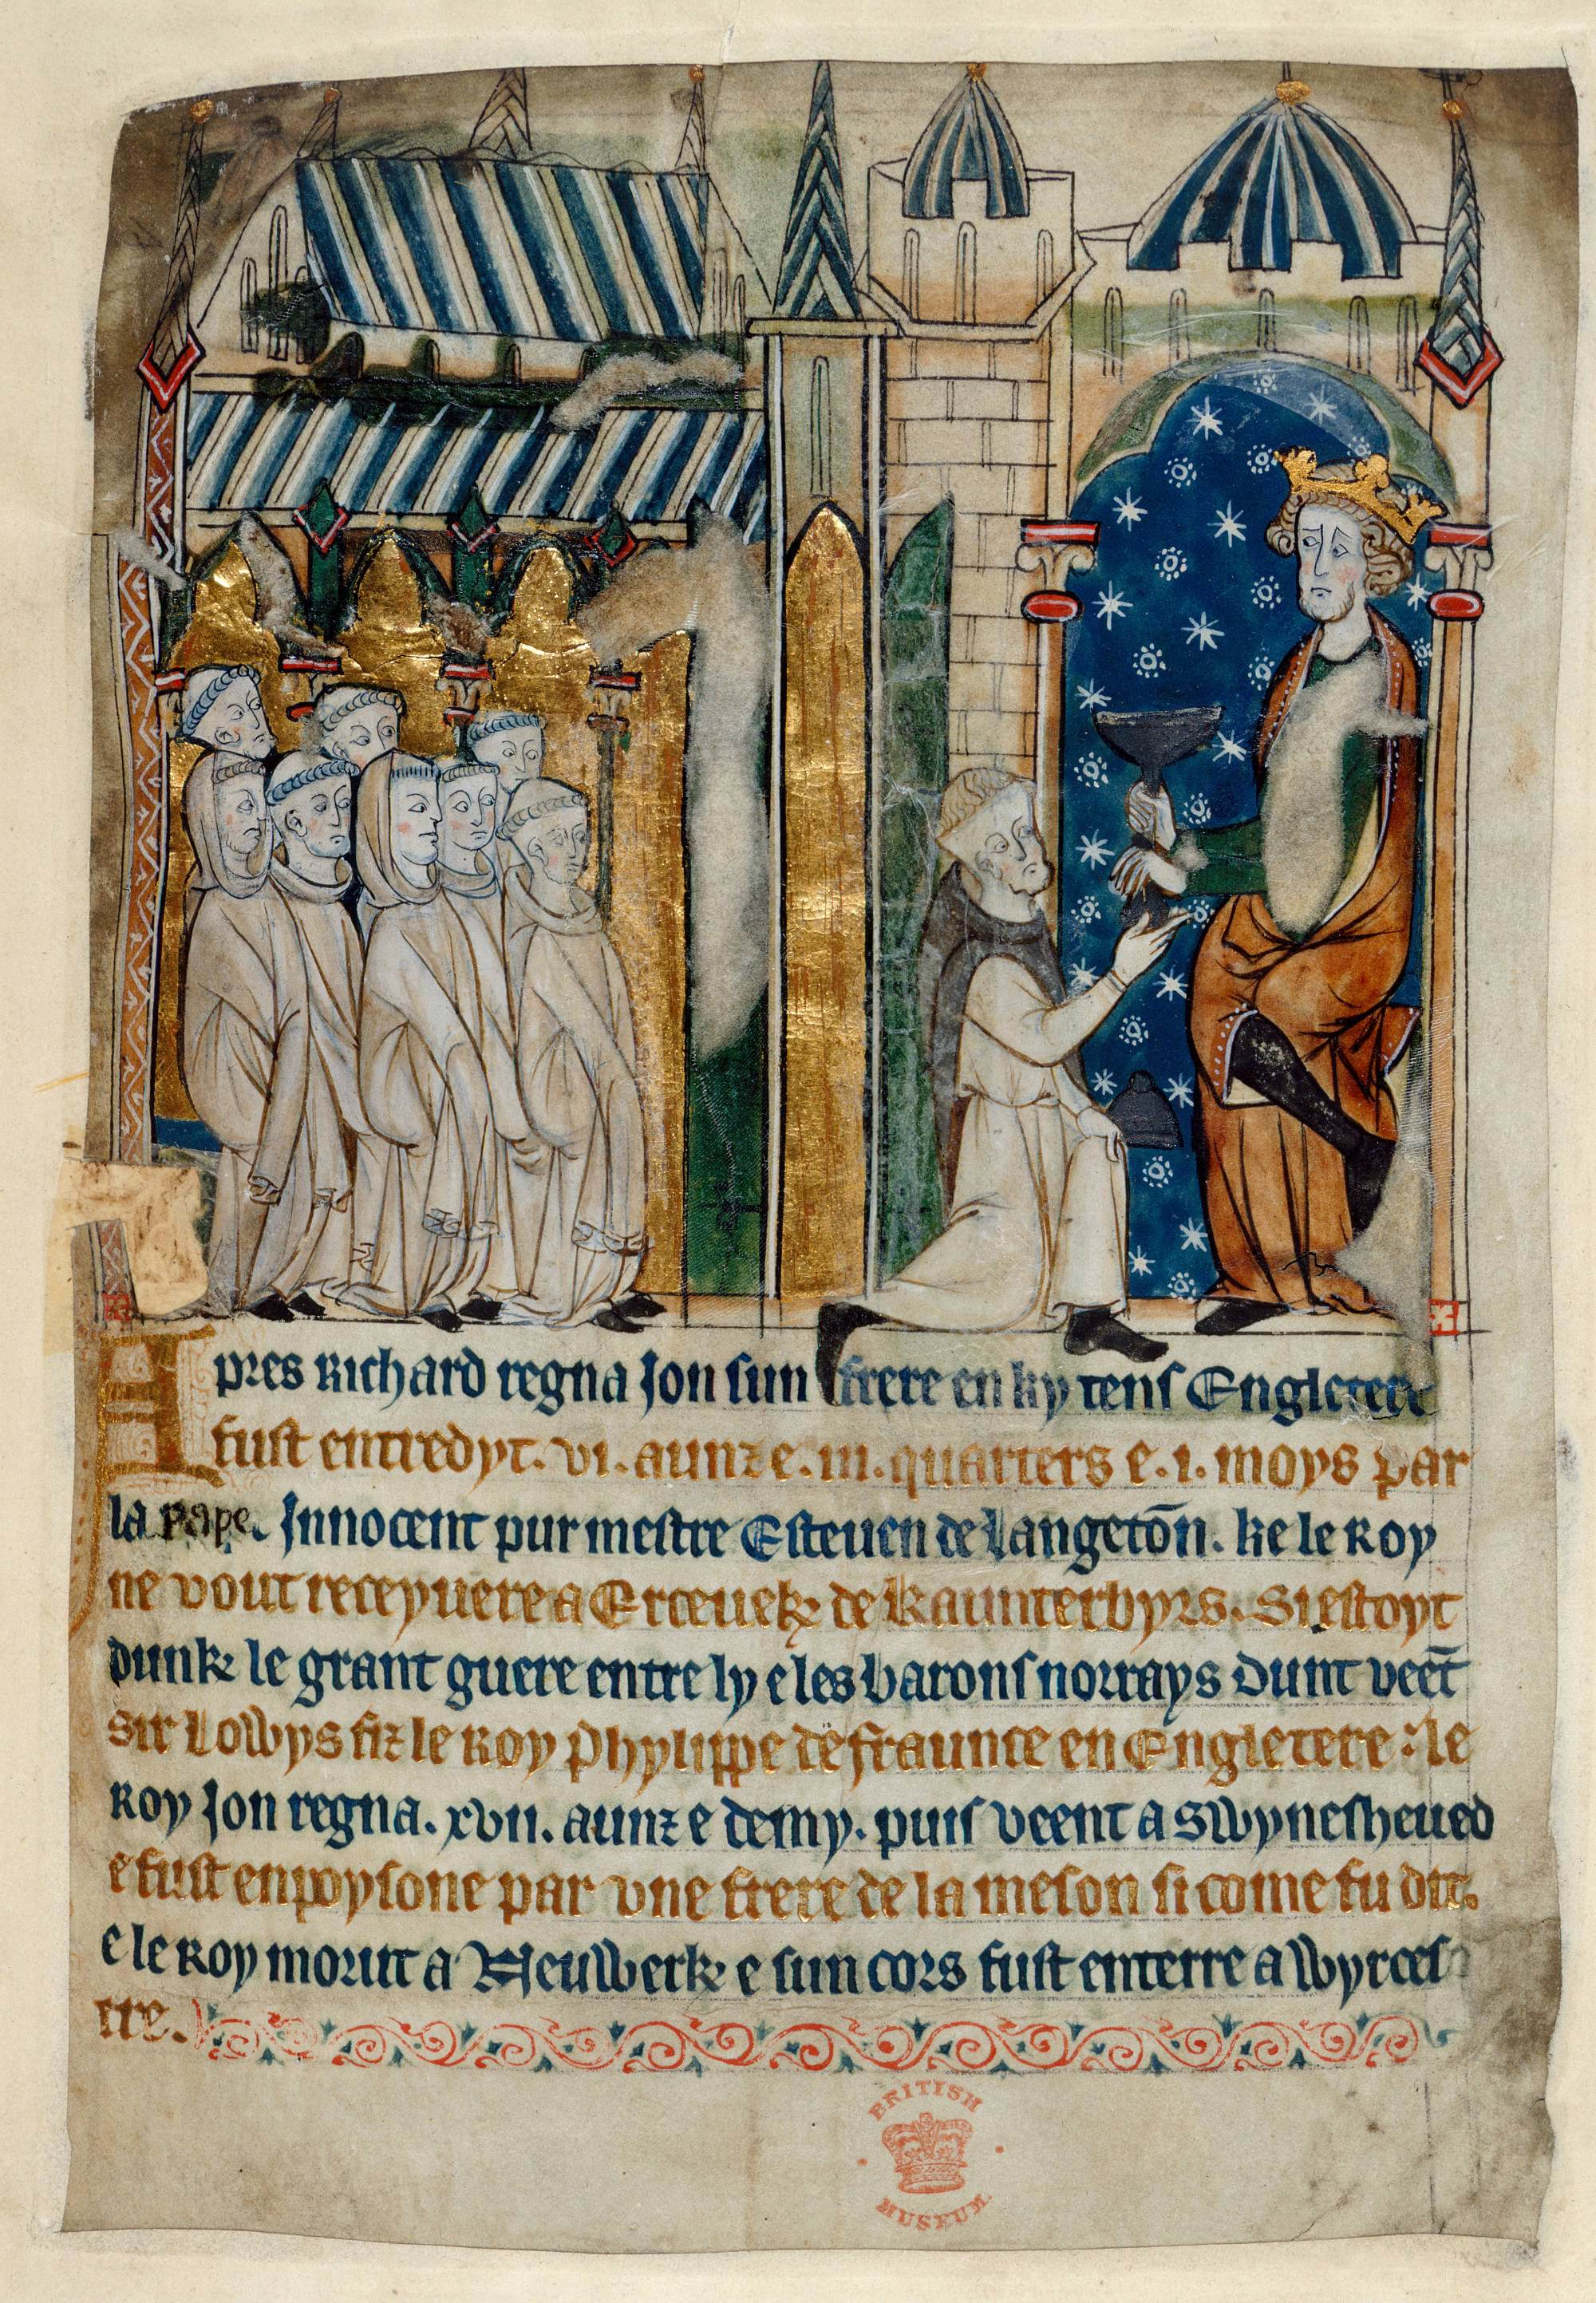 Study an illustration from a Church chronicle 1280